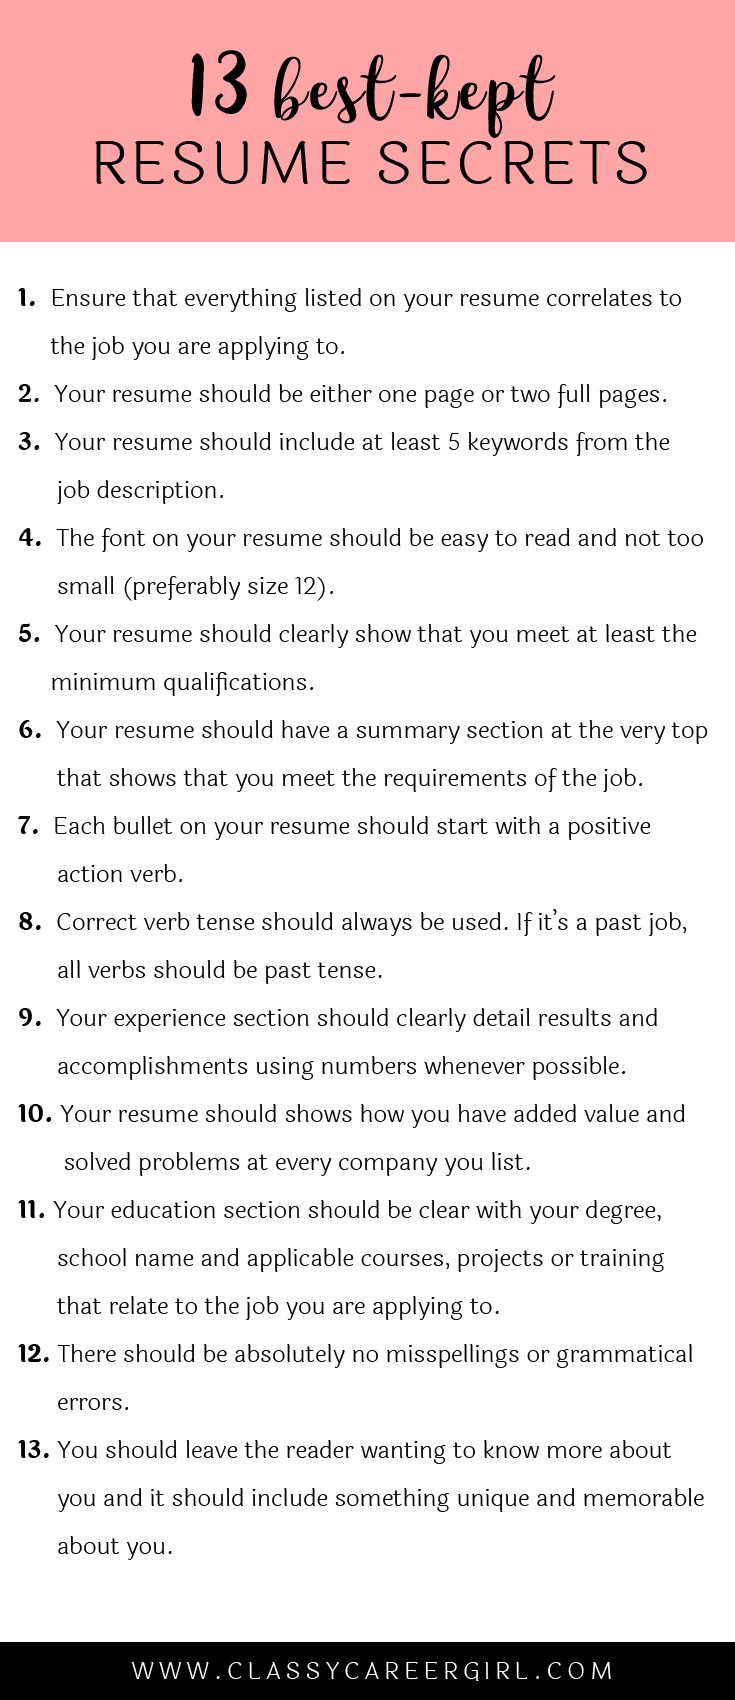 Opposenewapstandardsus  Pleasing  Ideas About Resume On Pinterest  Cv Format Resume Cv And  With Interesting Some Hiring Managers Will Toss Your Resume Out If You Dont Know These  With Agreeable Fancy Resume Templates Also Bank Teller Resumes In Addition Sample Resume For Fresh Graduate And Entry Level Programmer Resume As Well As Teacher Resumes Examples Additionally Resume Writing Business From Pinterestcom With Opposenewapstandardsus  Interesting  Ideas About Resume On Pinterest  Cv Format Resume Cv And  With Agreeable Some Hiring Managers Will Toss Your Resume Out If You Dont Know These  And Pleasing Fancy Resume Templates Also Bank Teller Resumes In Addition Sample Resume For Fresh Graduate From Pinterestcom